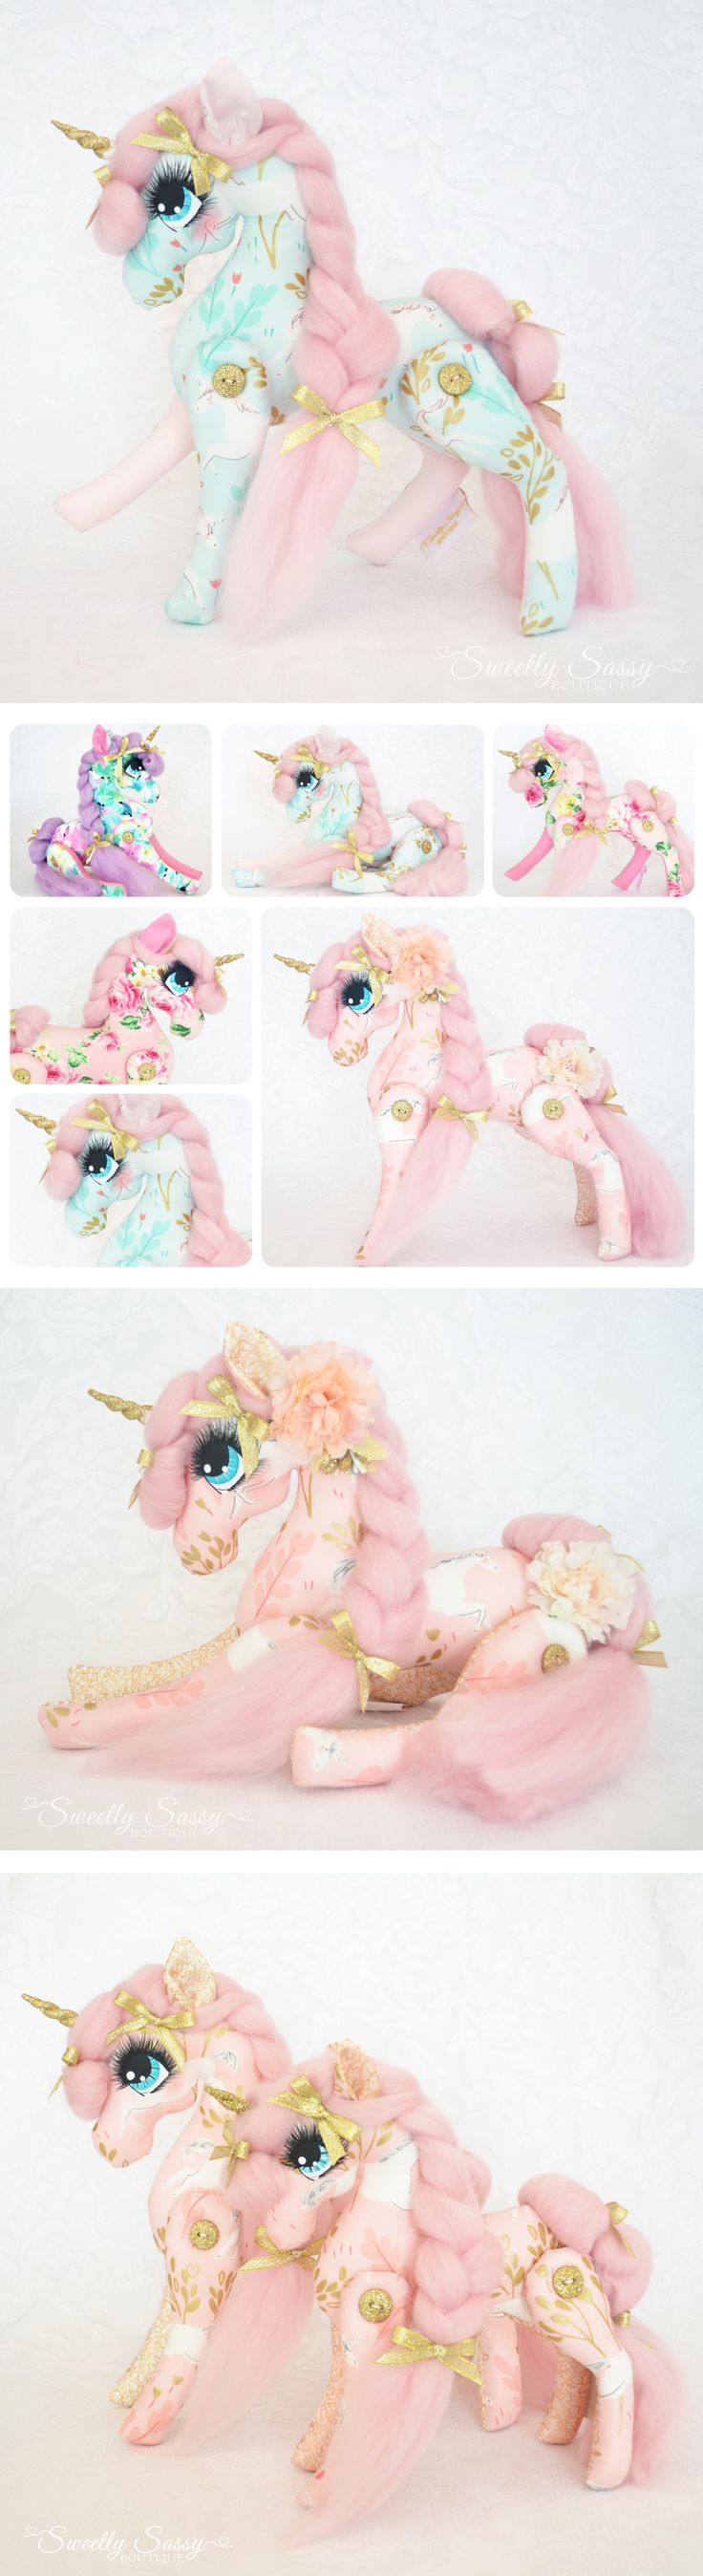 Bespoke Whimsical Unicorn Doll